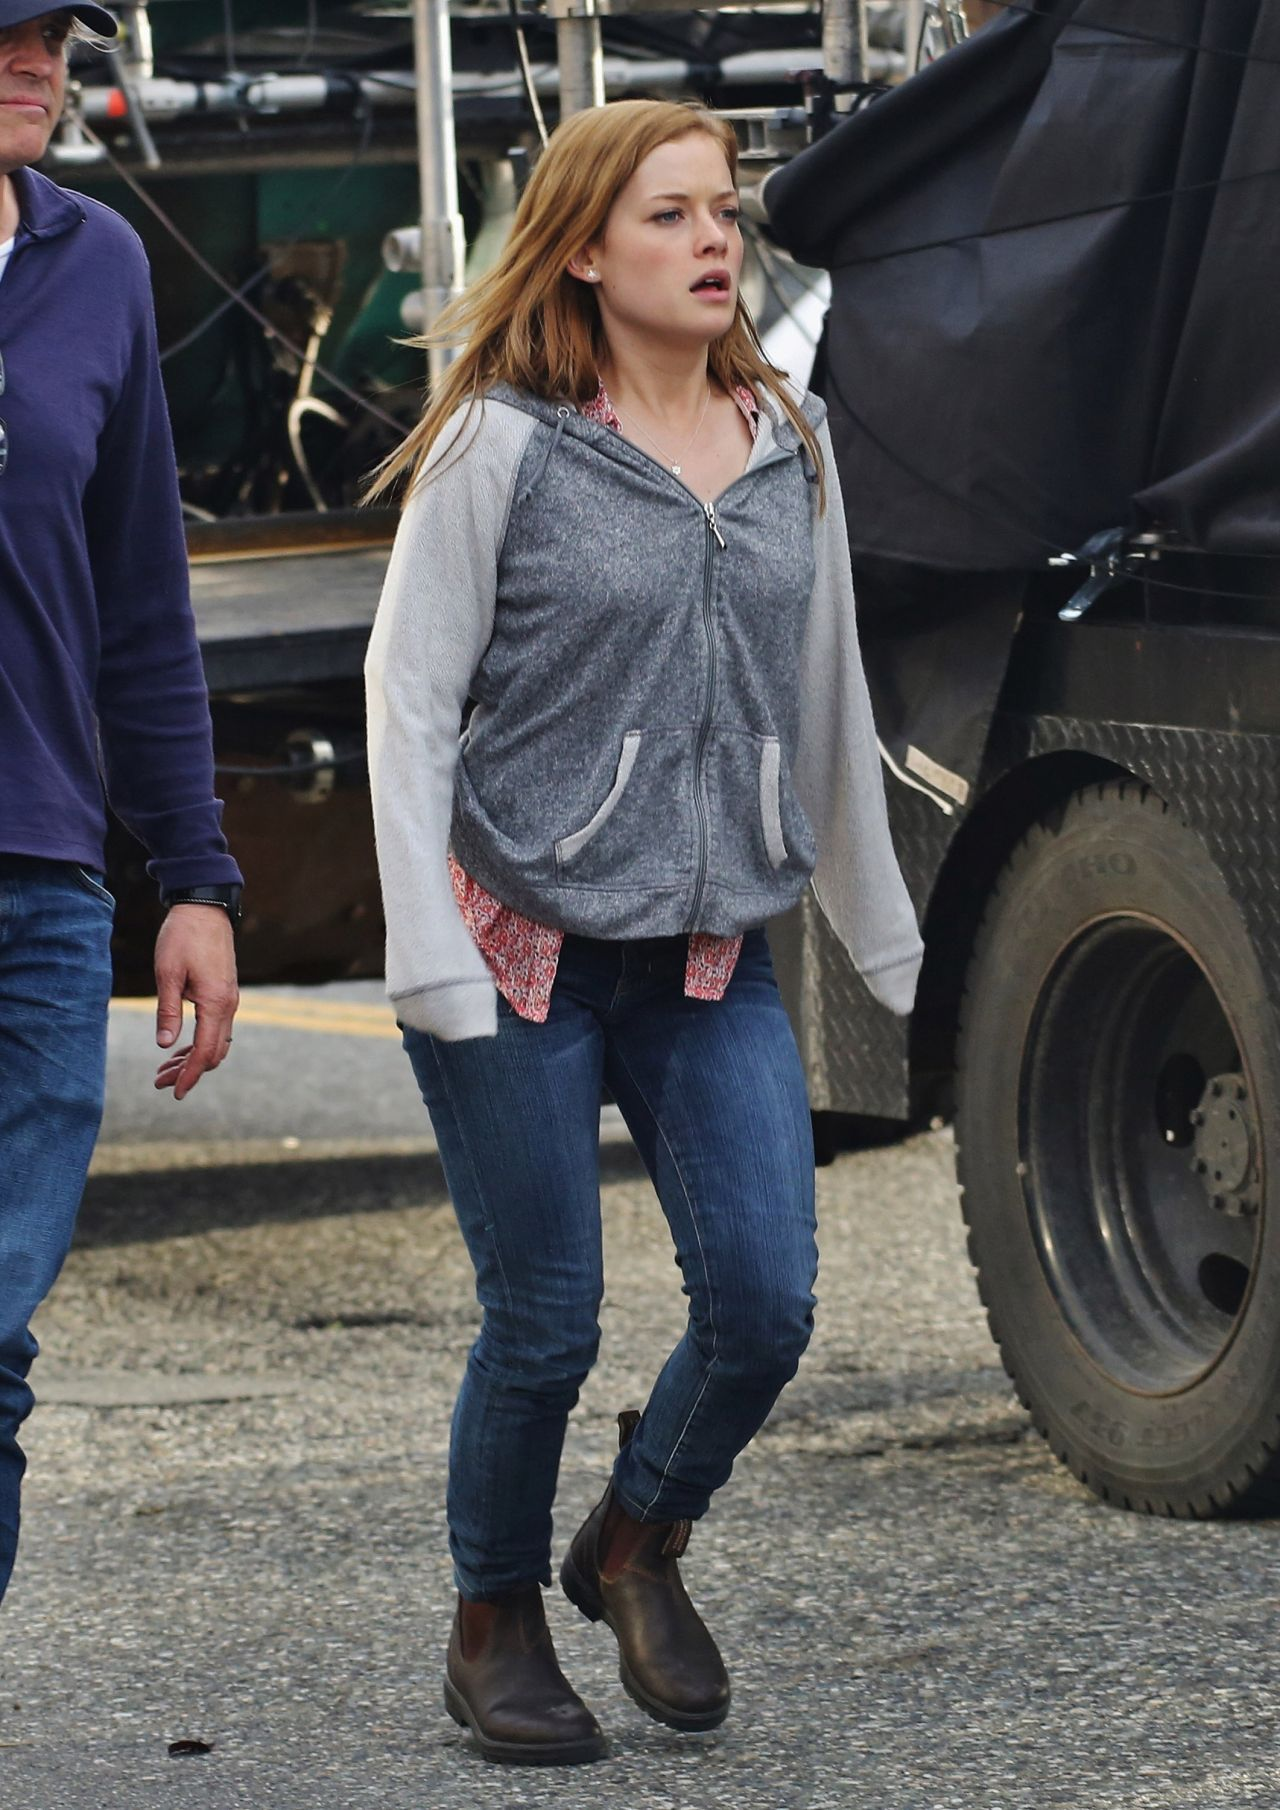 New Year 2014 Hd Wallpapers Jane Levy Filming Monster Trucks Movie In Chilliwack